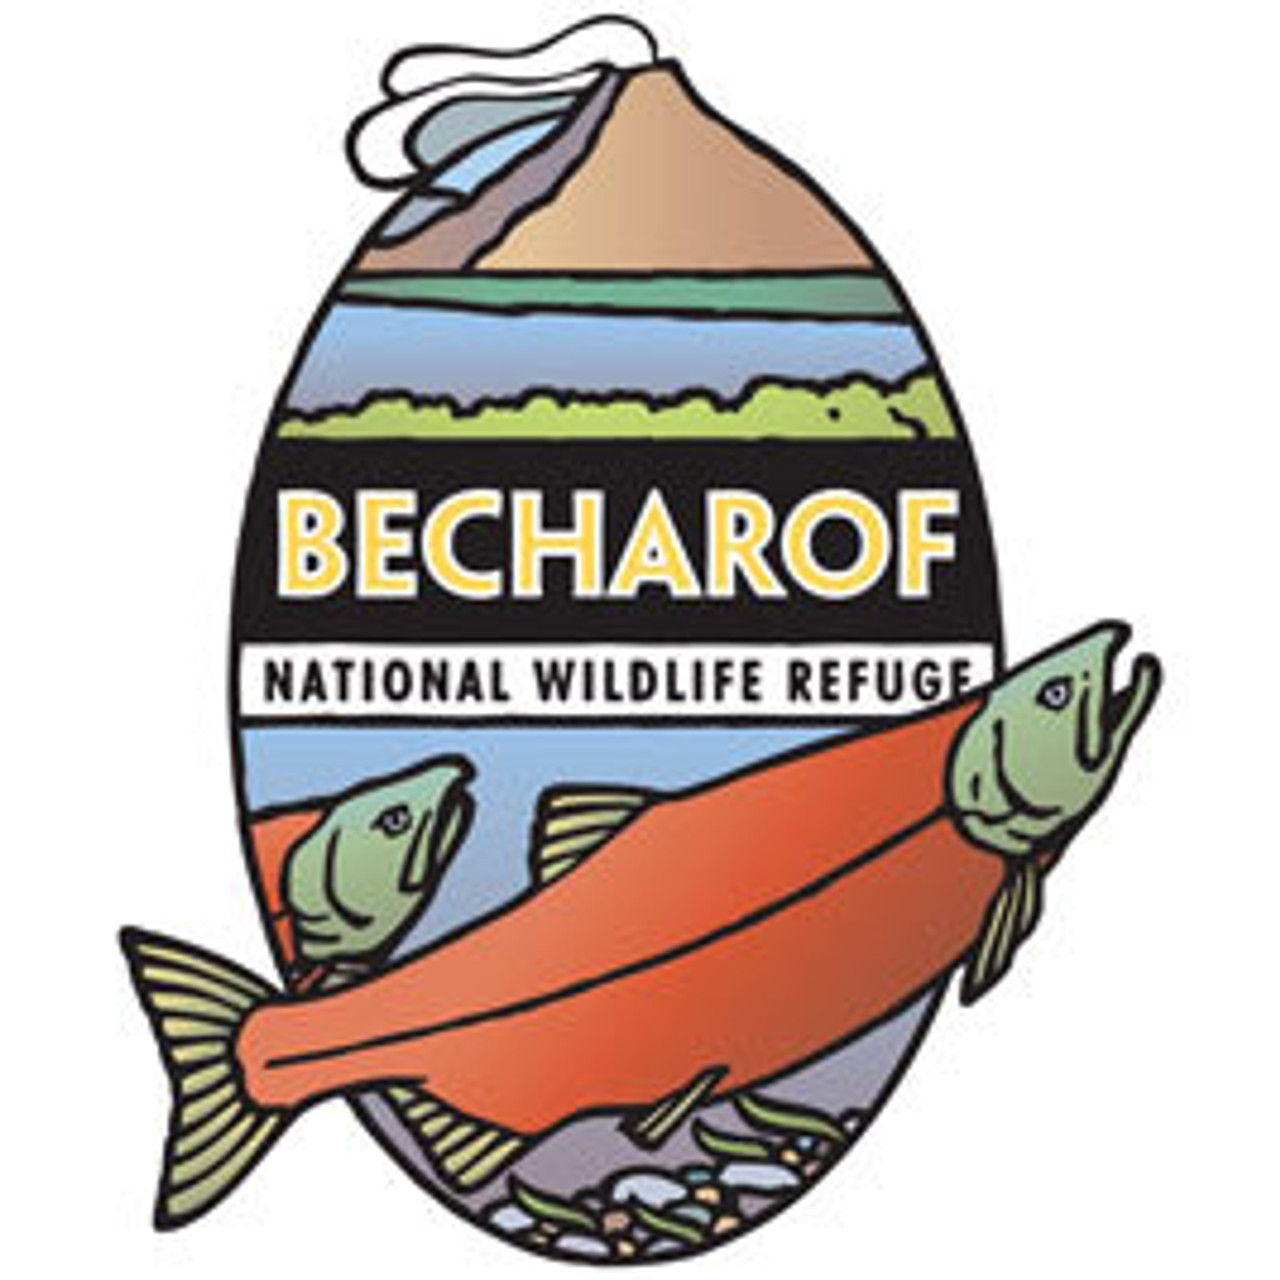 Becharof National Wildlife Refuge